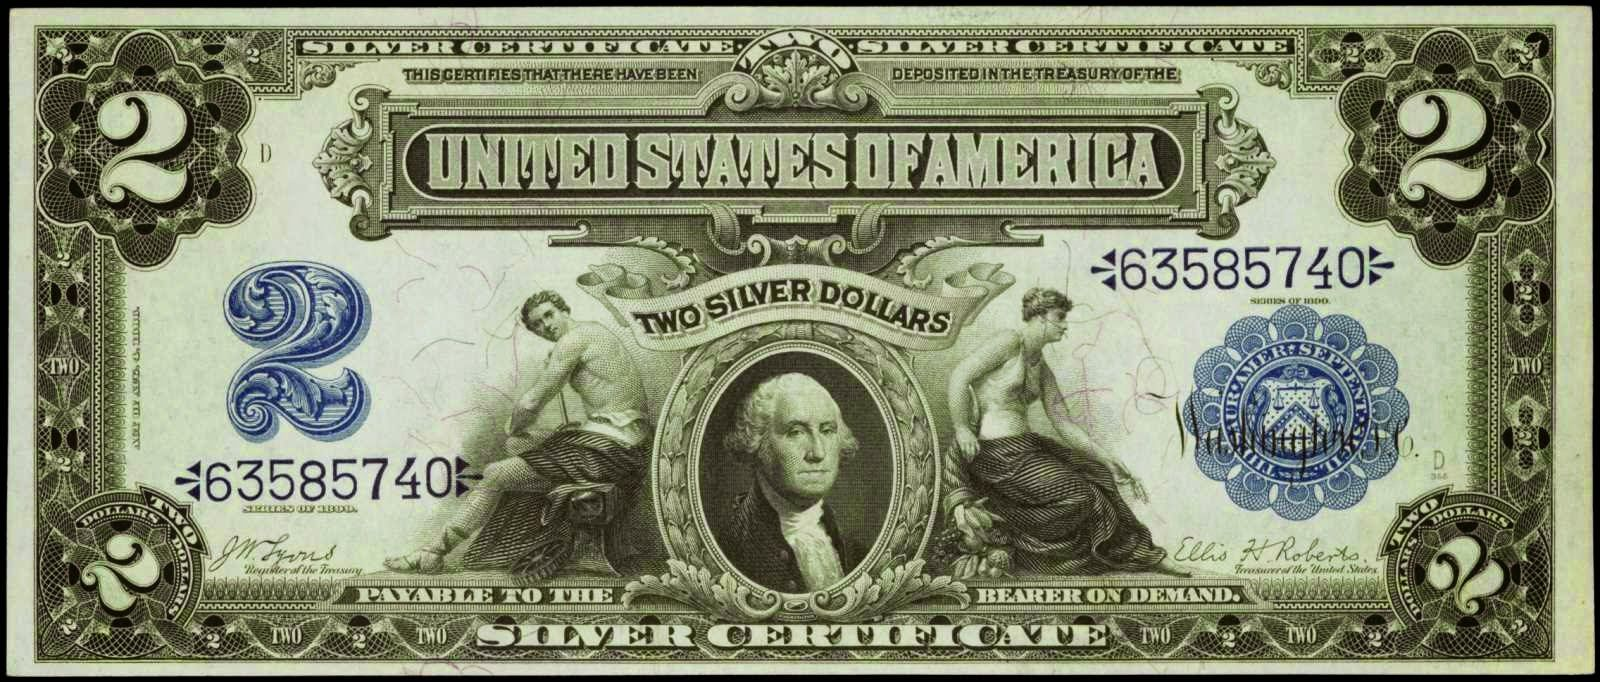 Paper Money Of The United States Two Dollar Silver Certificate